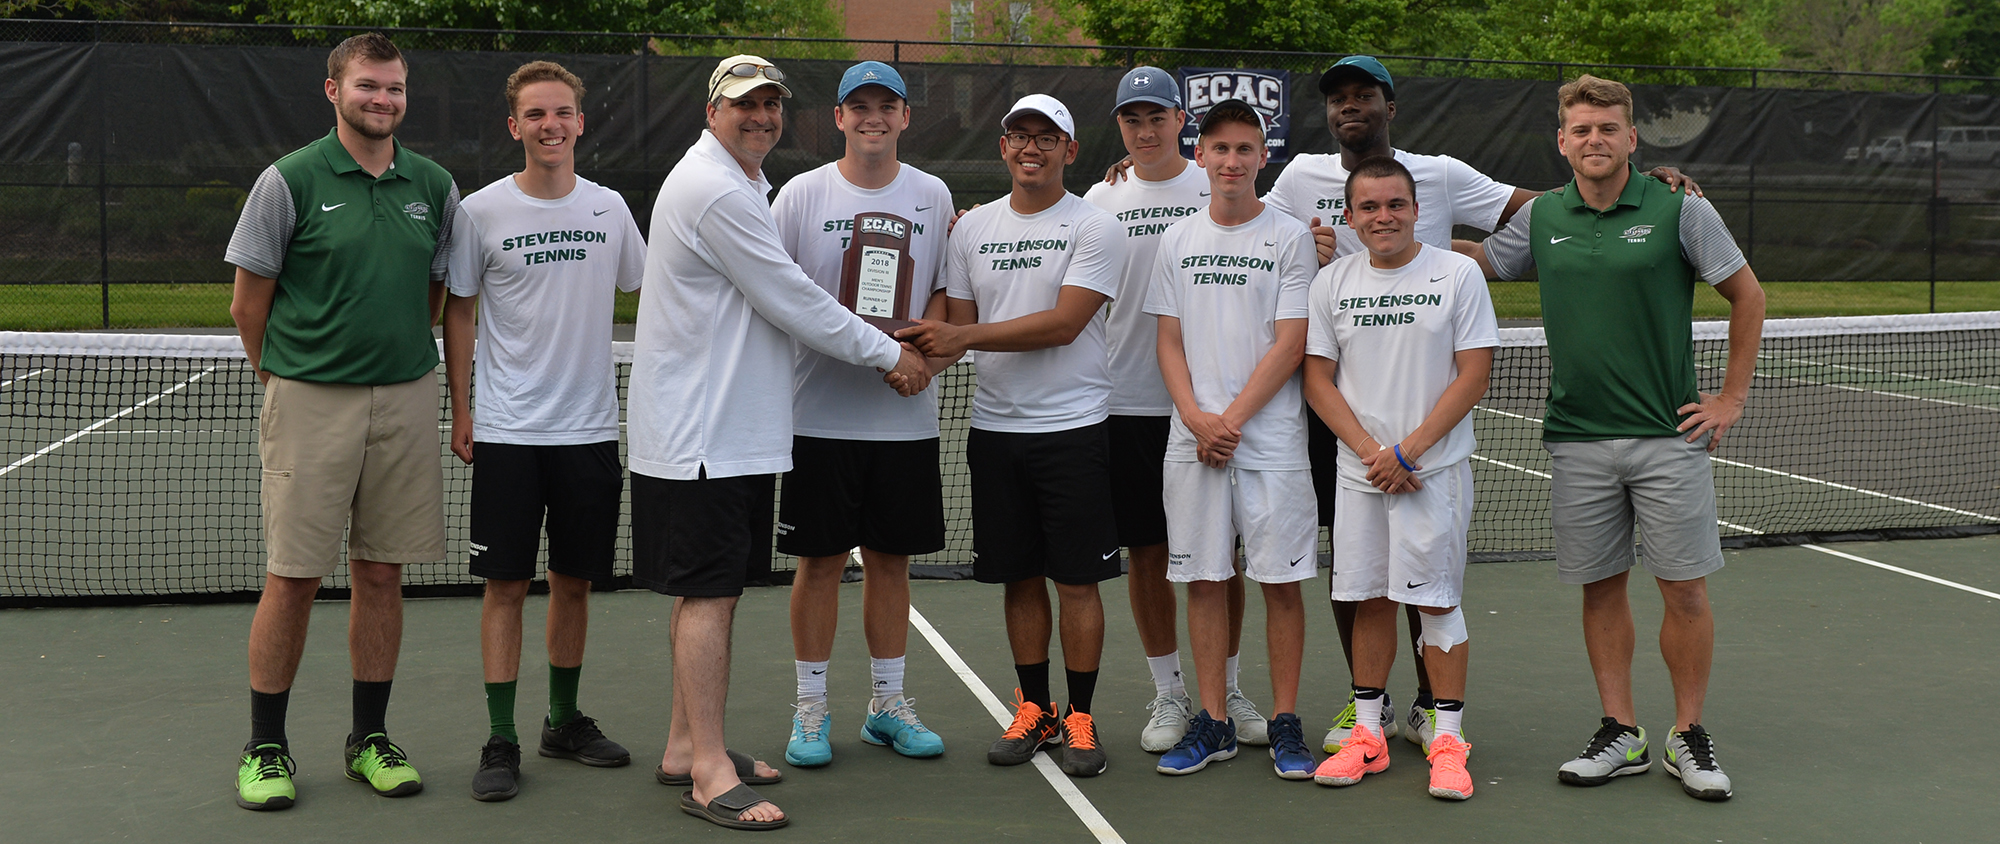 Mustangs Advance to ECAC Finals, Fall to Top-Seeded Pfeiffer